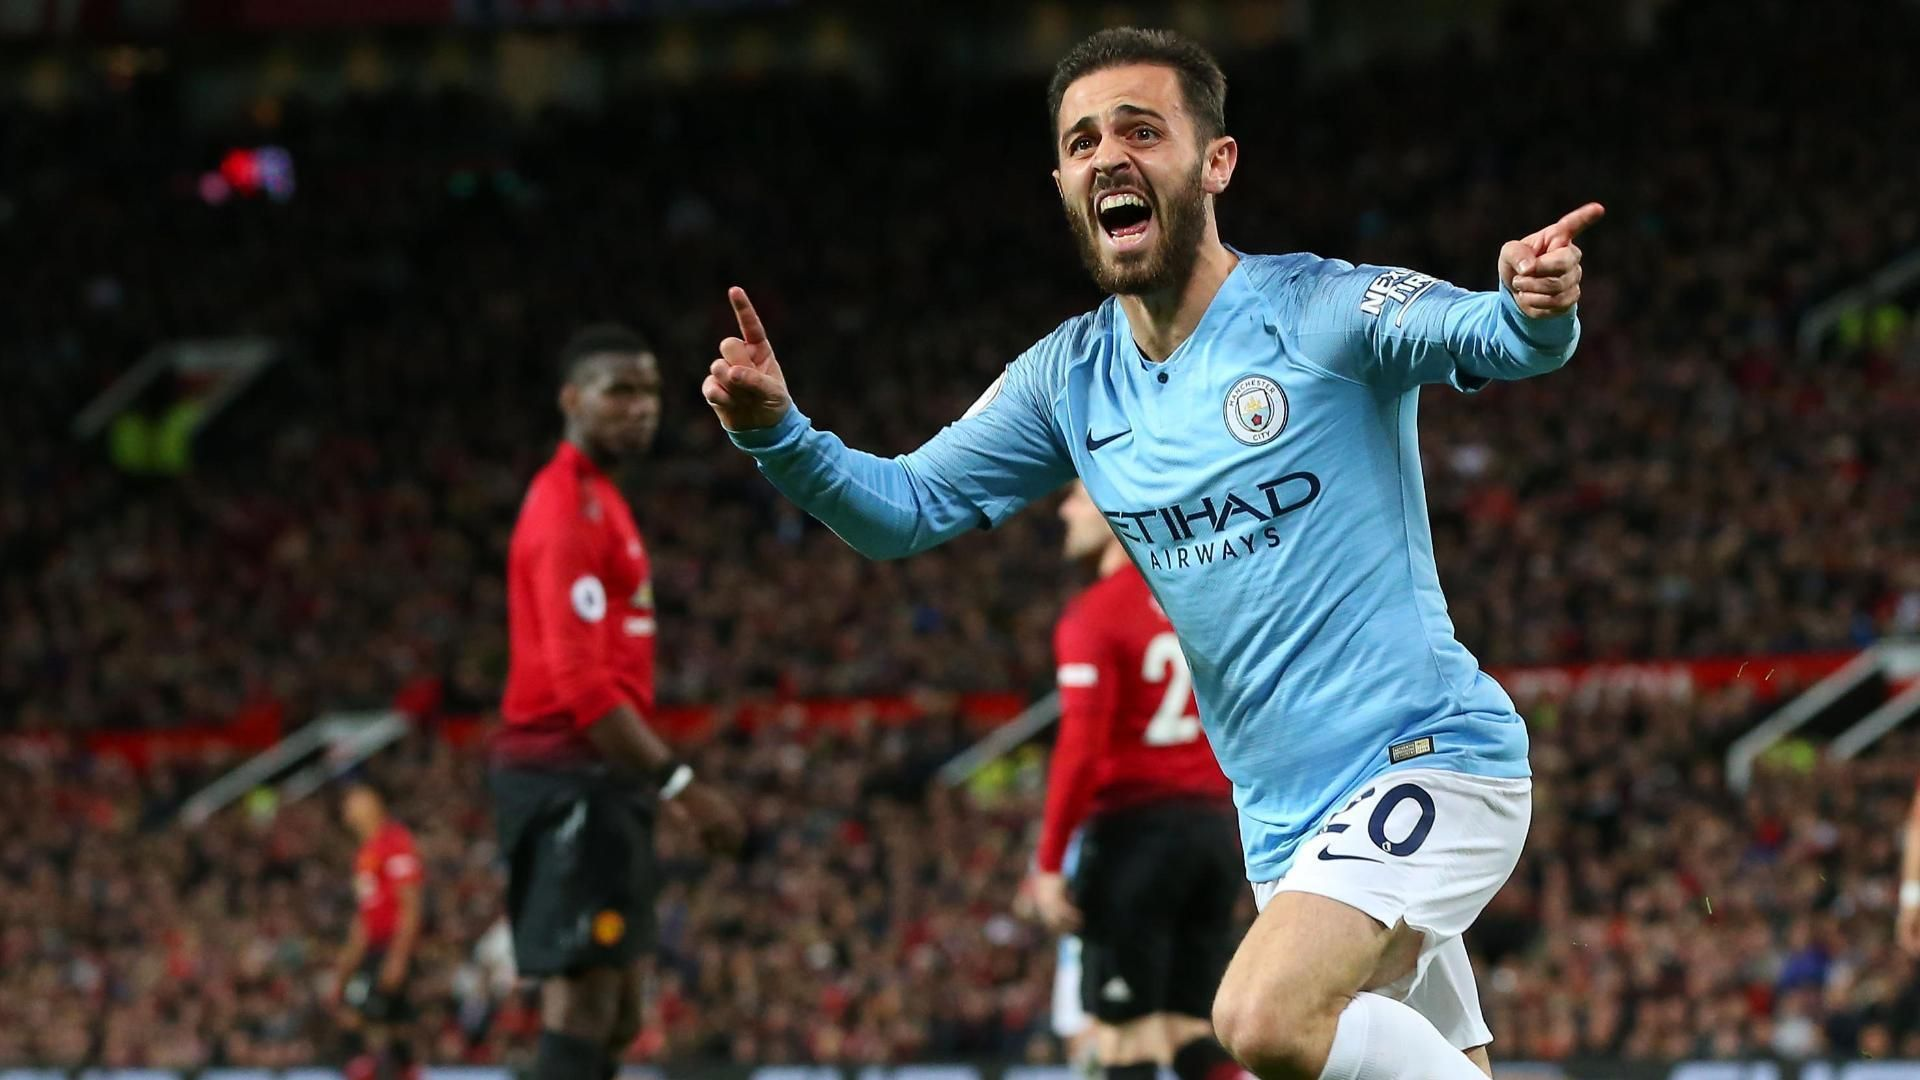 Bernardo Silva puts Man City in front at Old Trafford